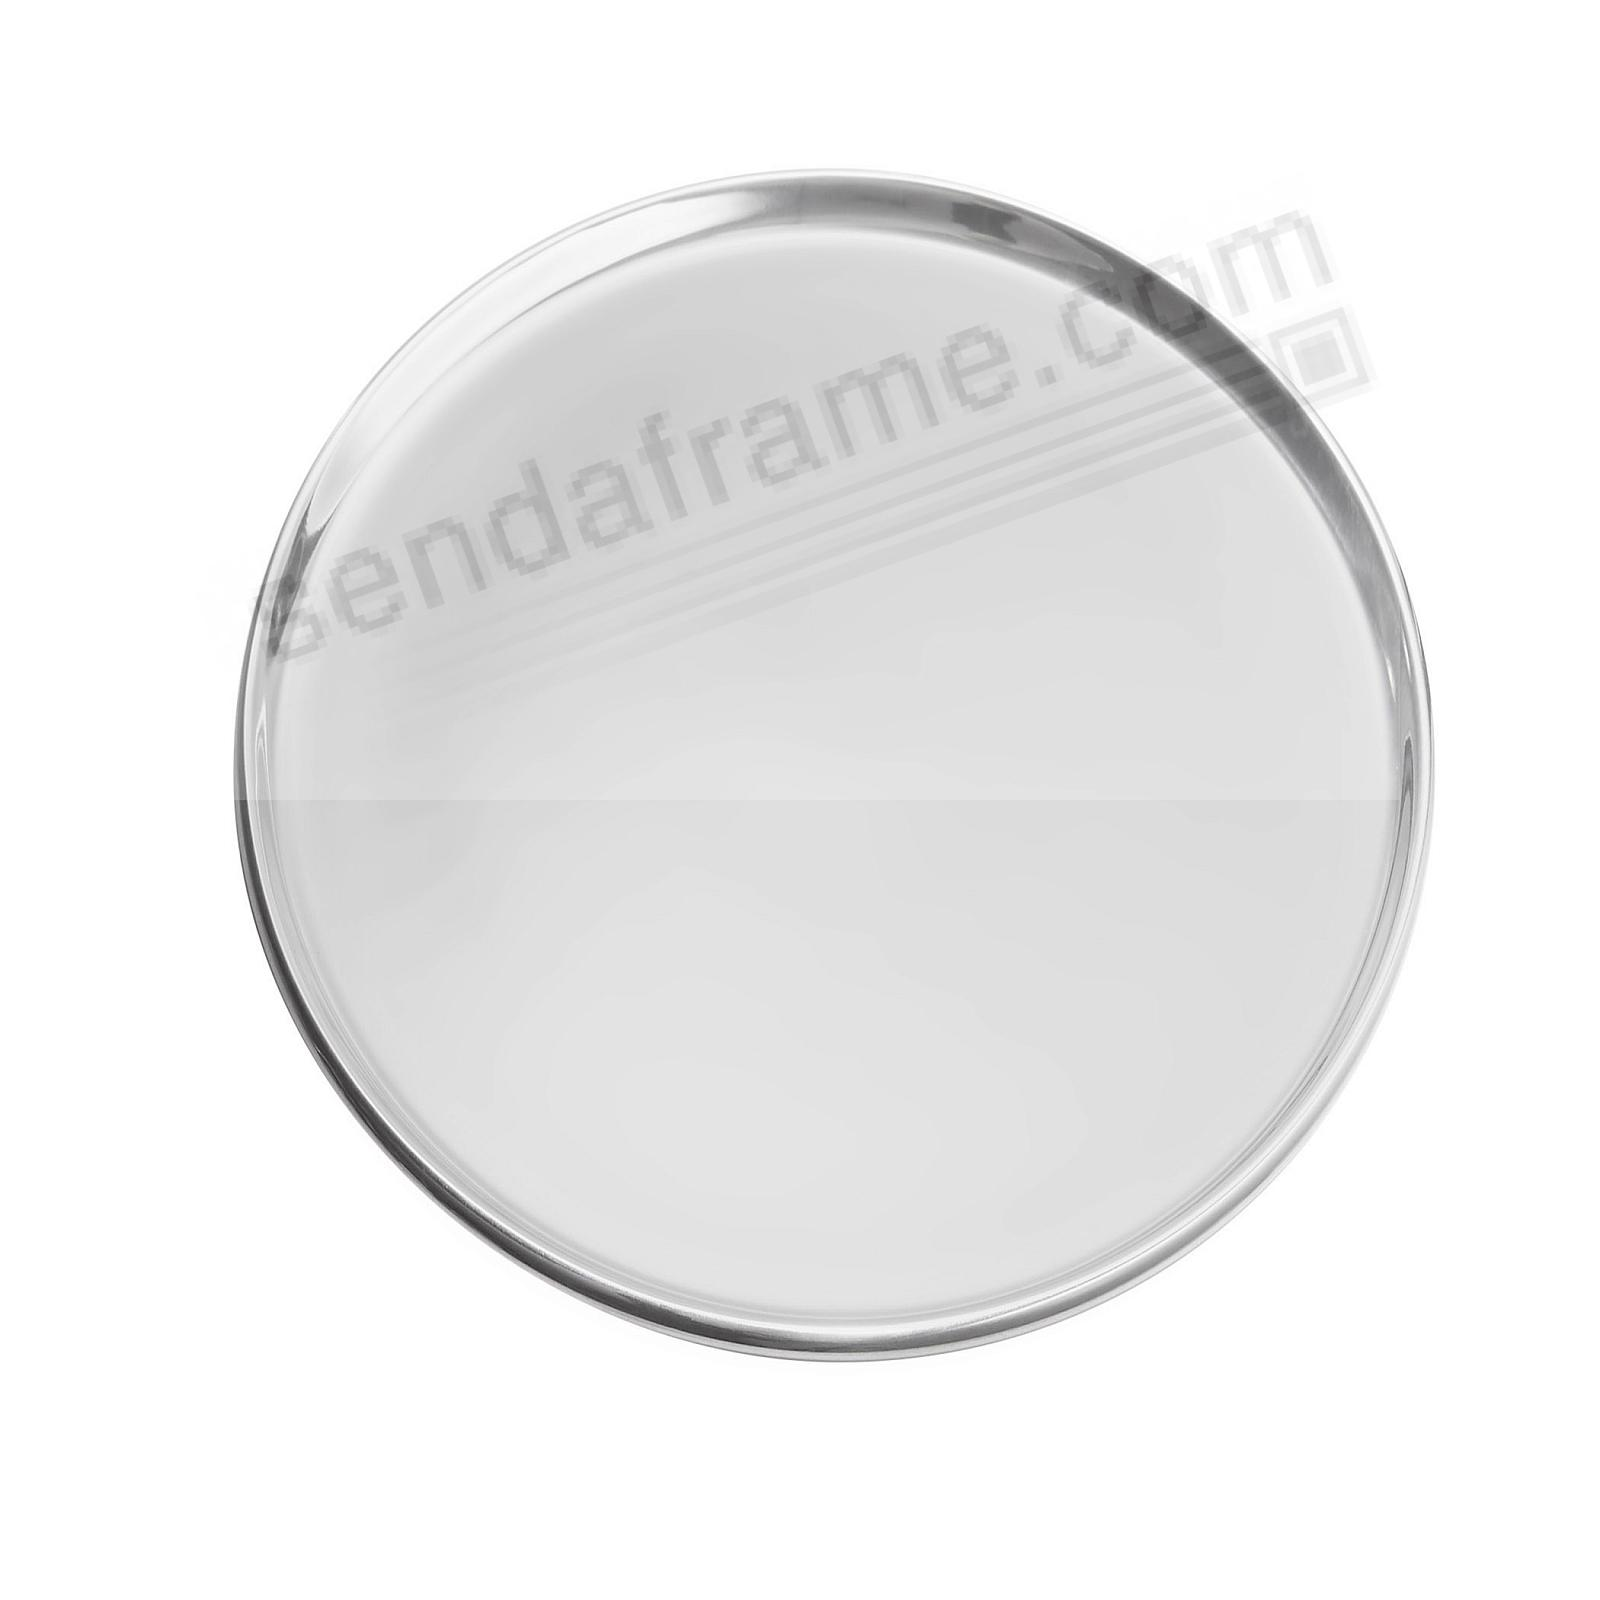 CLASSIC ROUND SERVING 13x13 TRAY crafted by Nambe®